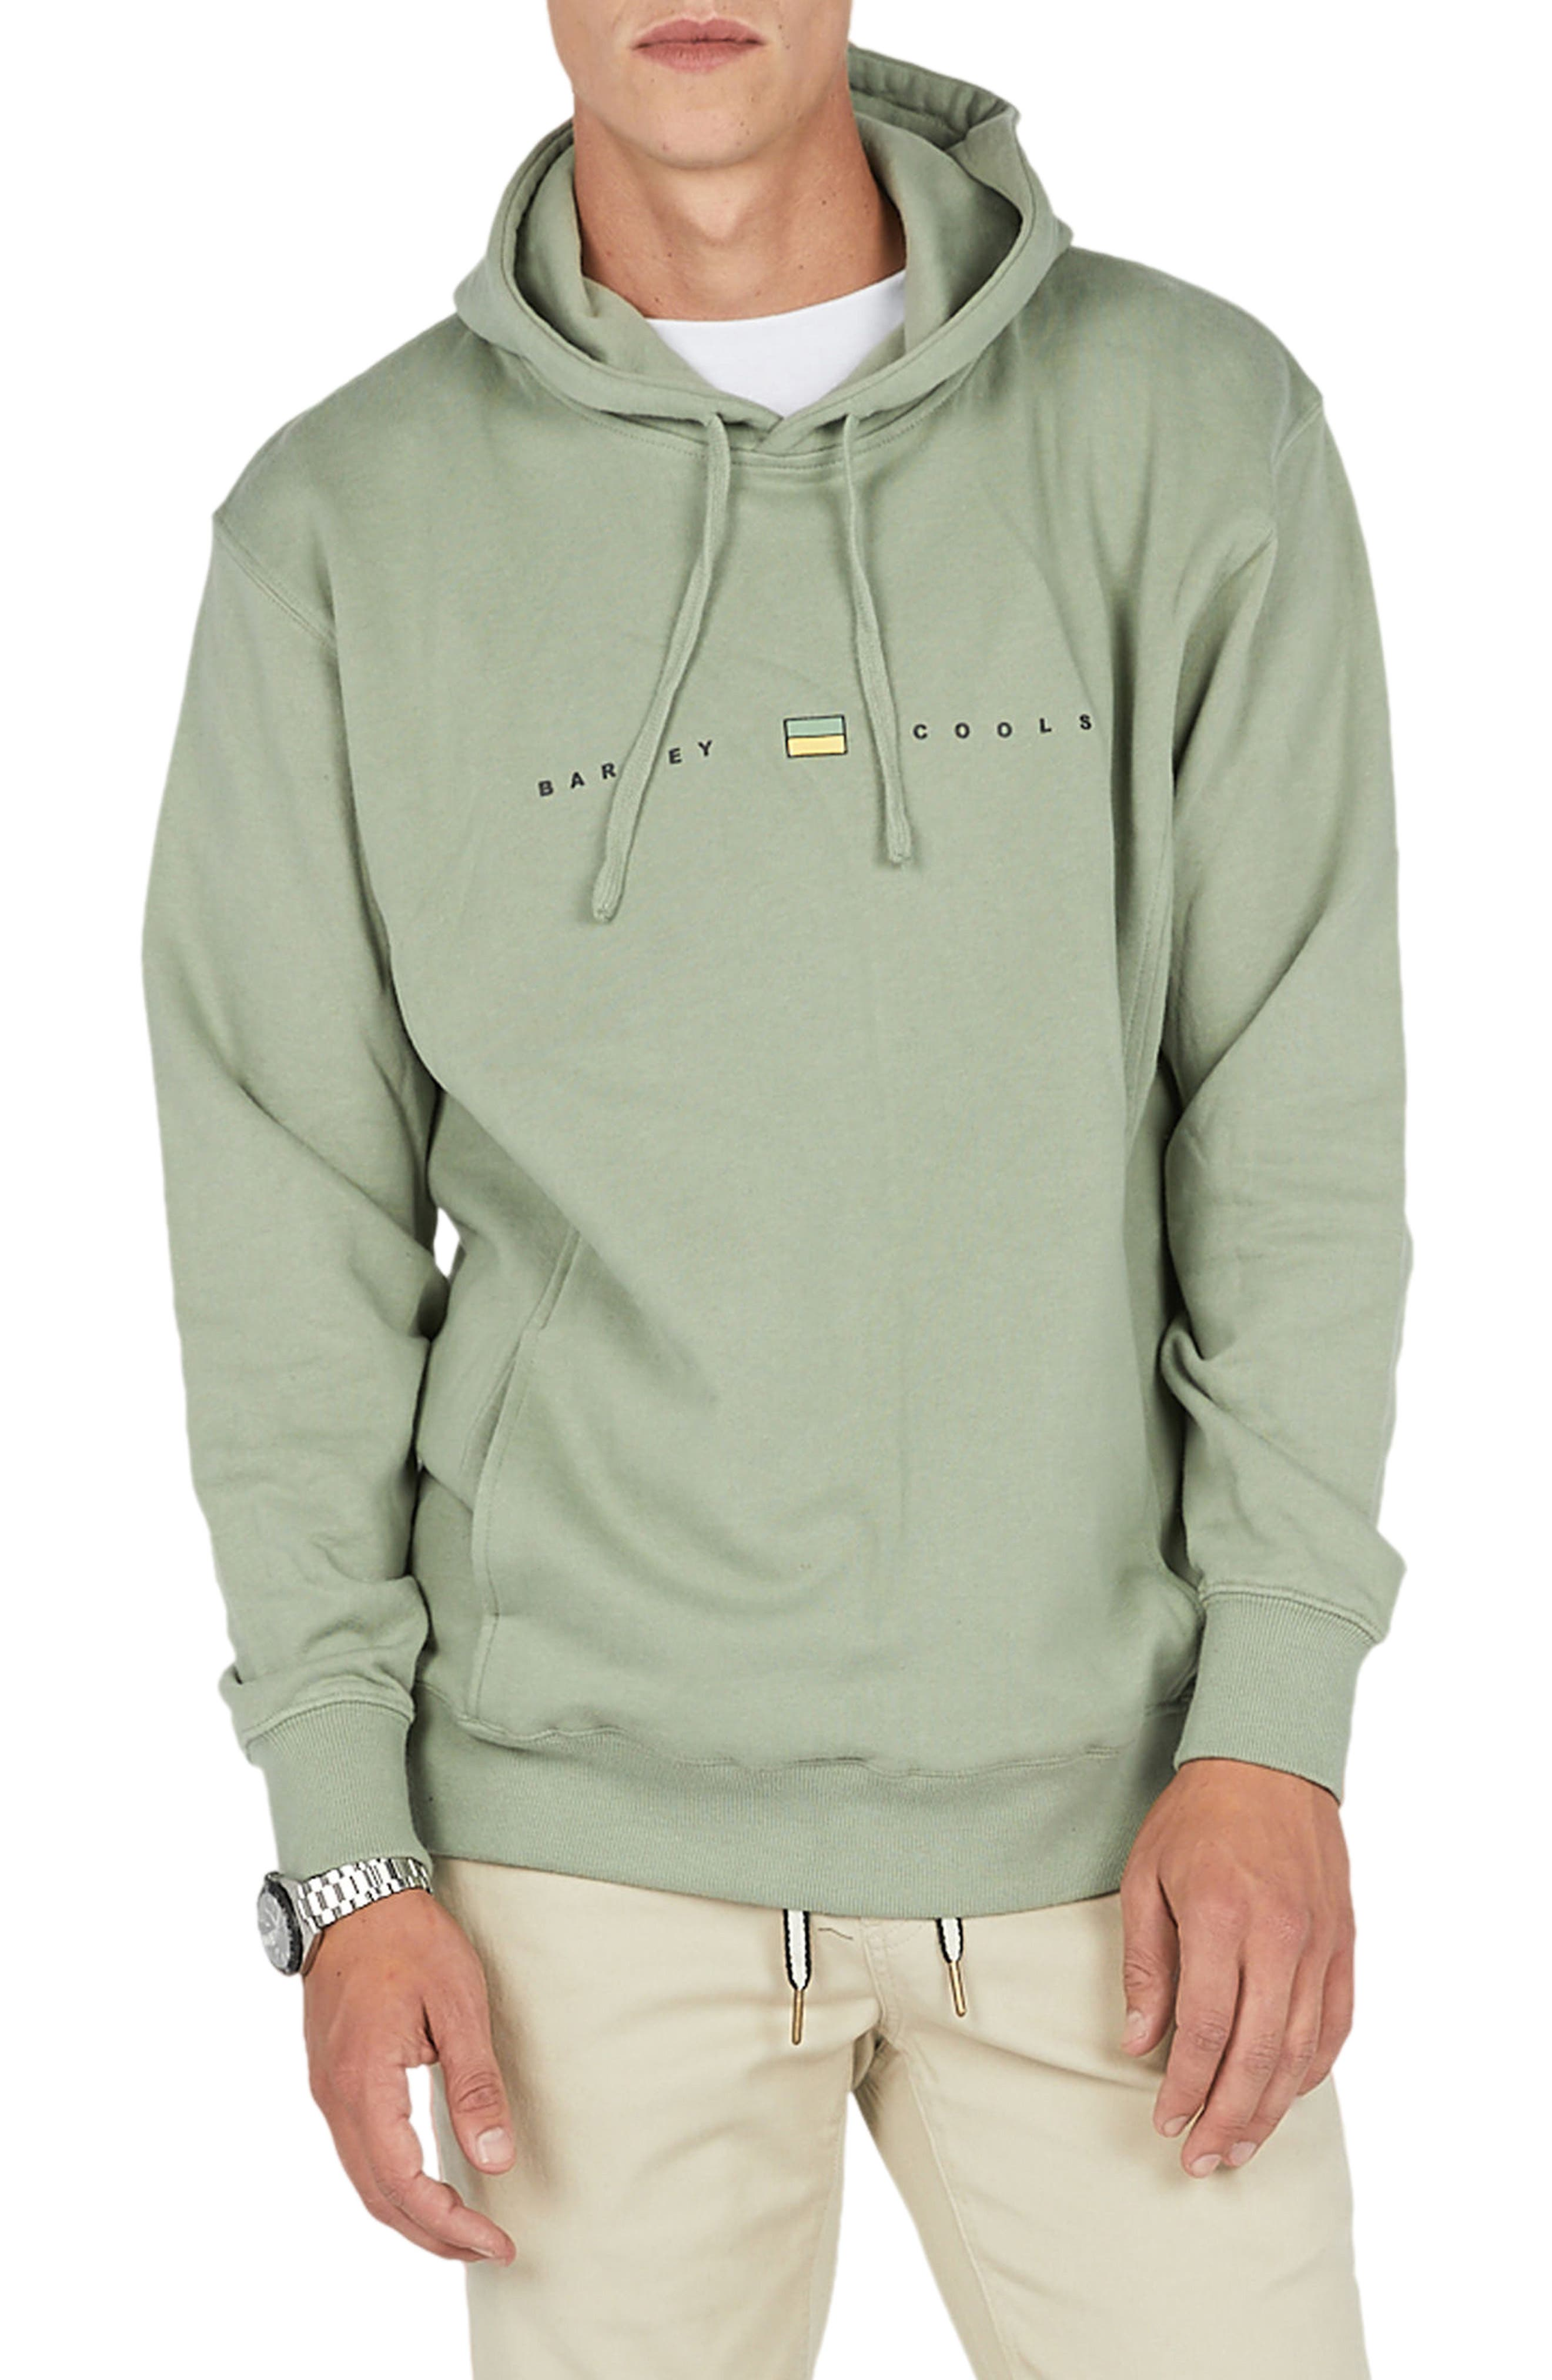 B. Cause Hoodie,                             Main thumbnail 1, color,                             311